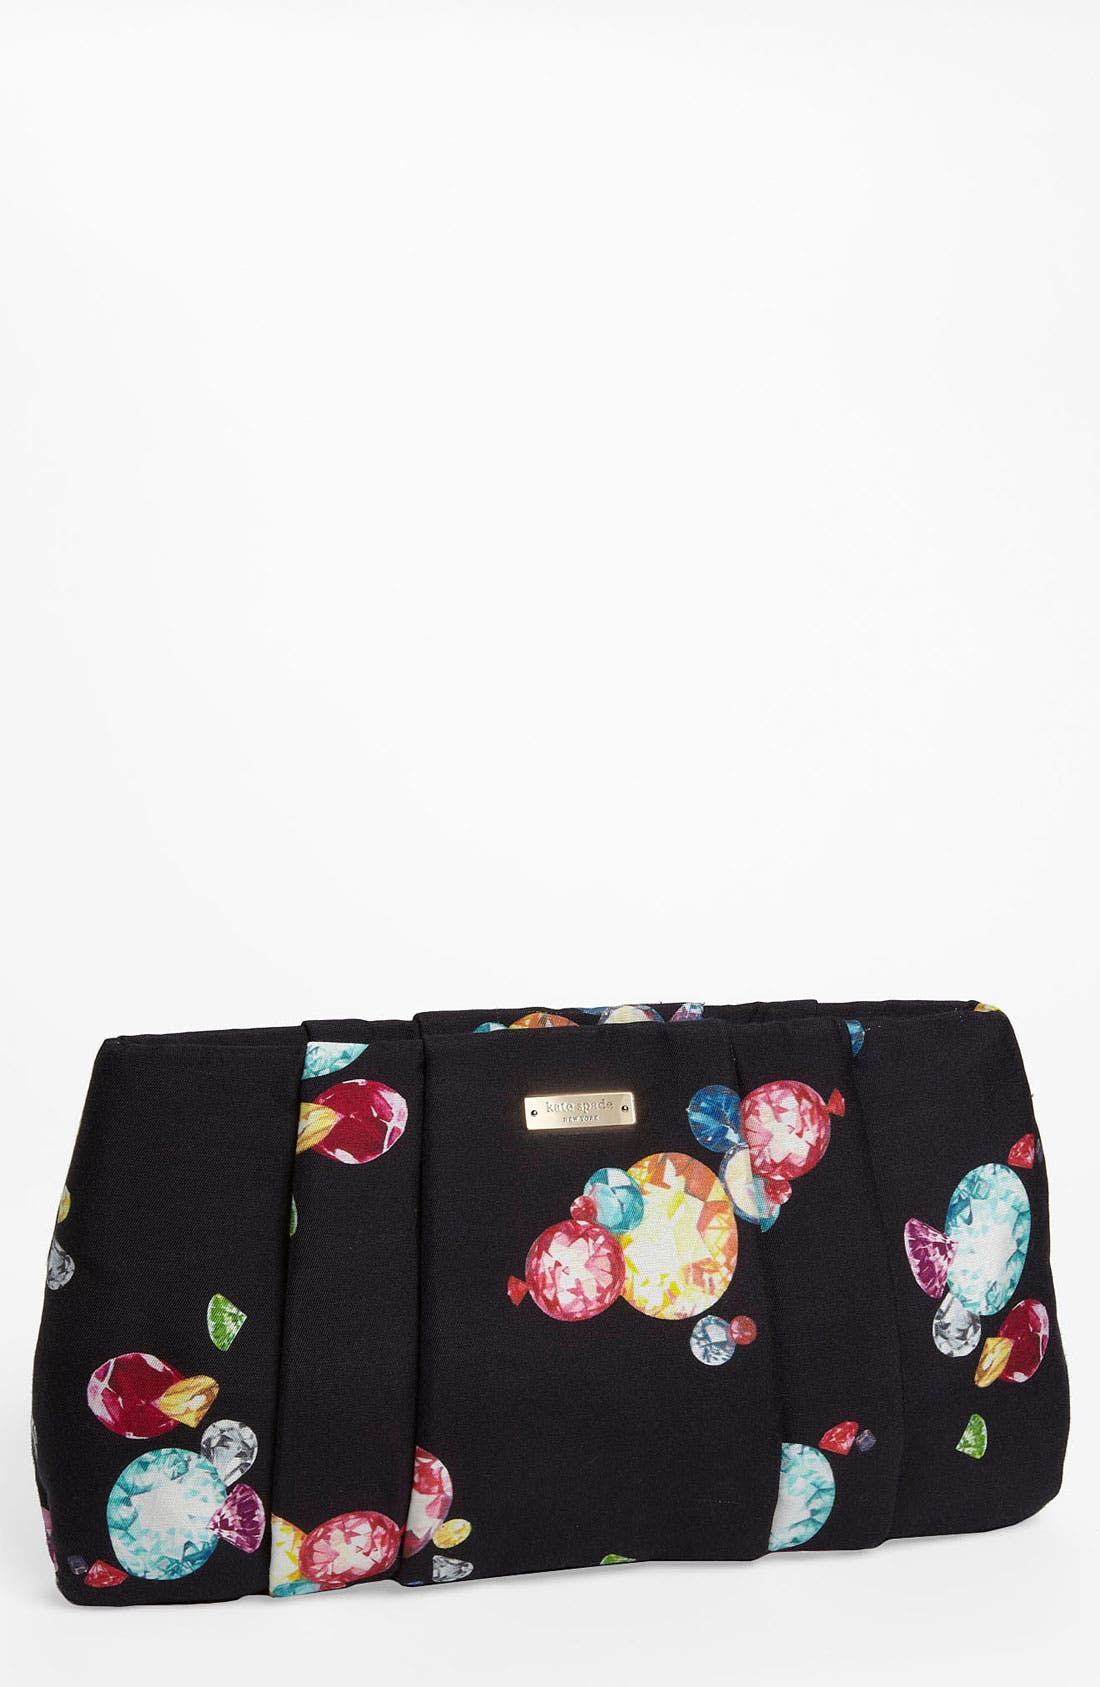 Main Image - kate spade new york ' kaleidoball - april' clutch